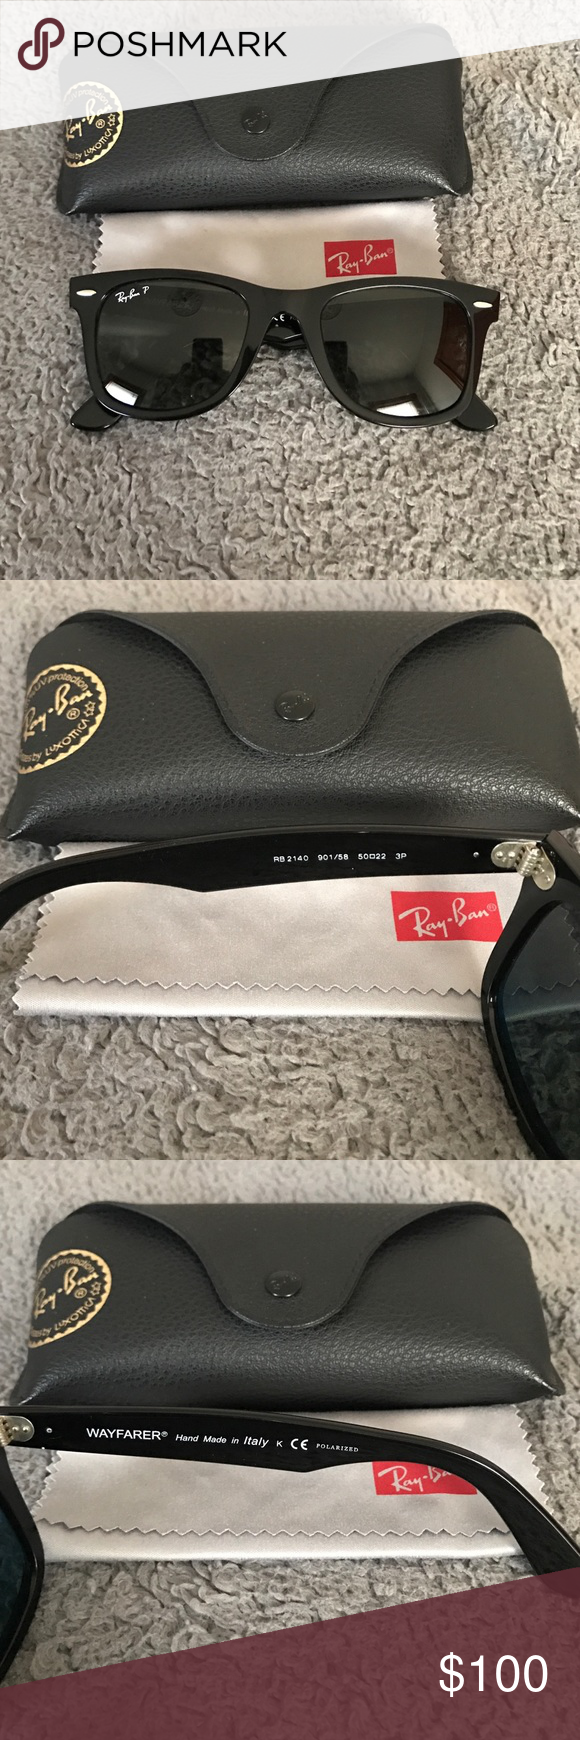 Ray-Ban Original Wayfarer Classic Polarized RB2140 901 58 50-22 3P. Worn  only a few times - no scratches or damages. Size standard, polarized, solid  black ... aef1fafb6ae6